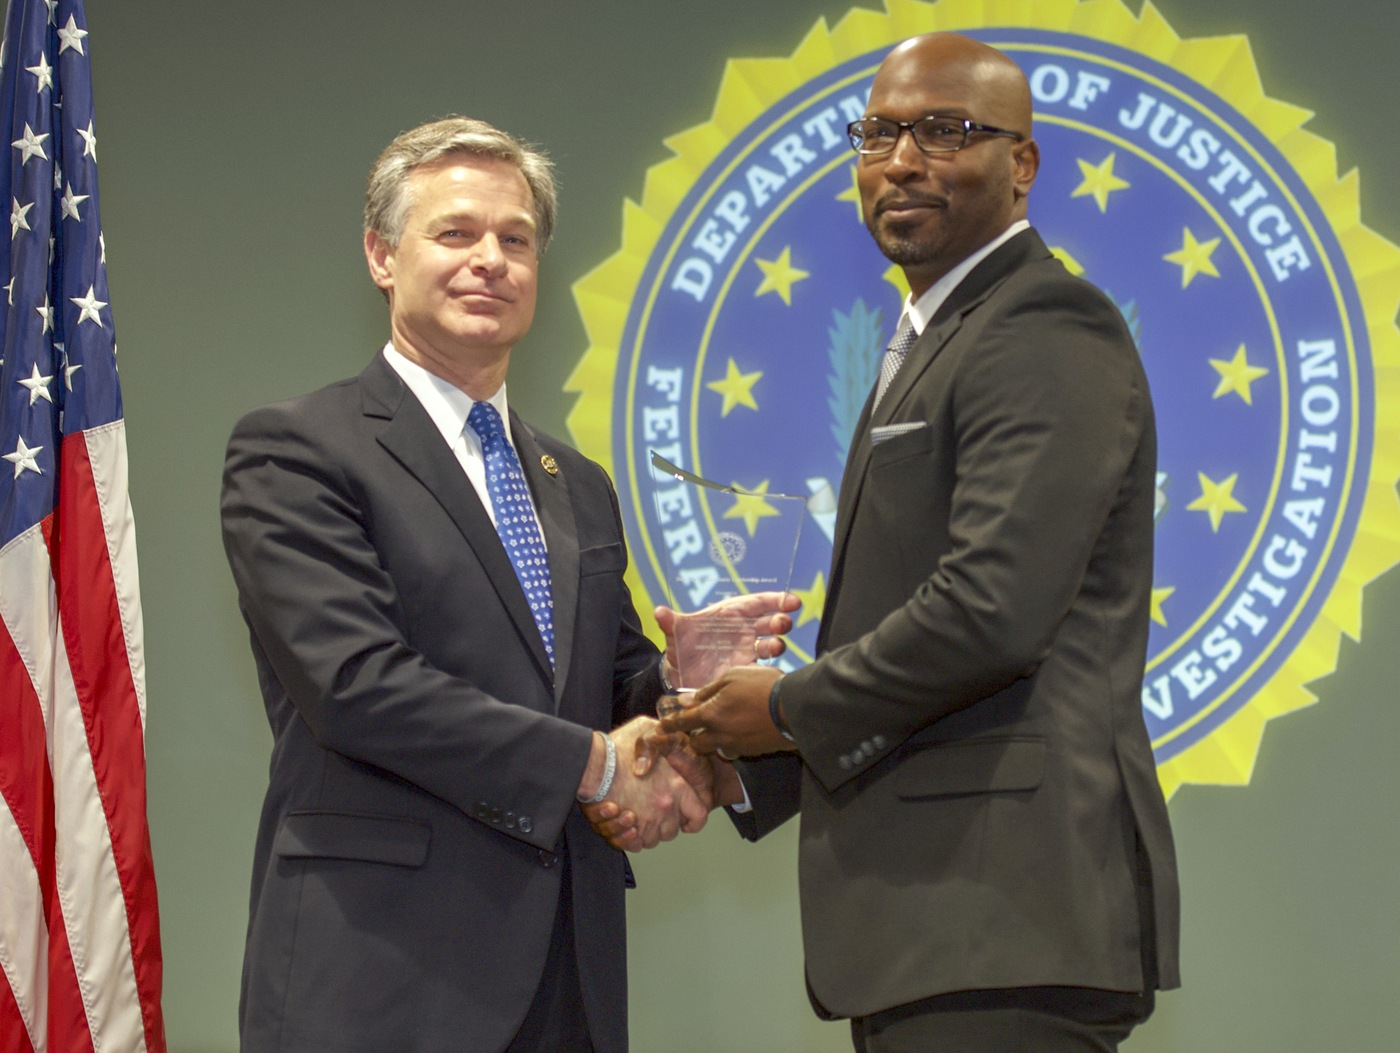 FBI Director Christopher Wray presents Springfield Division recipient The Outlet (represented by Michael Phelon) with the Director's Community Leadership Award (DCLA) at a ceremony at FBI Headquarters on May 3, 2019.